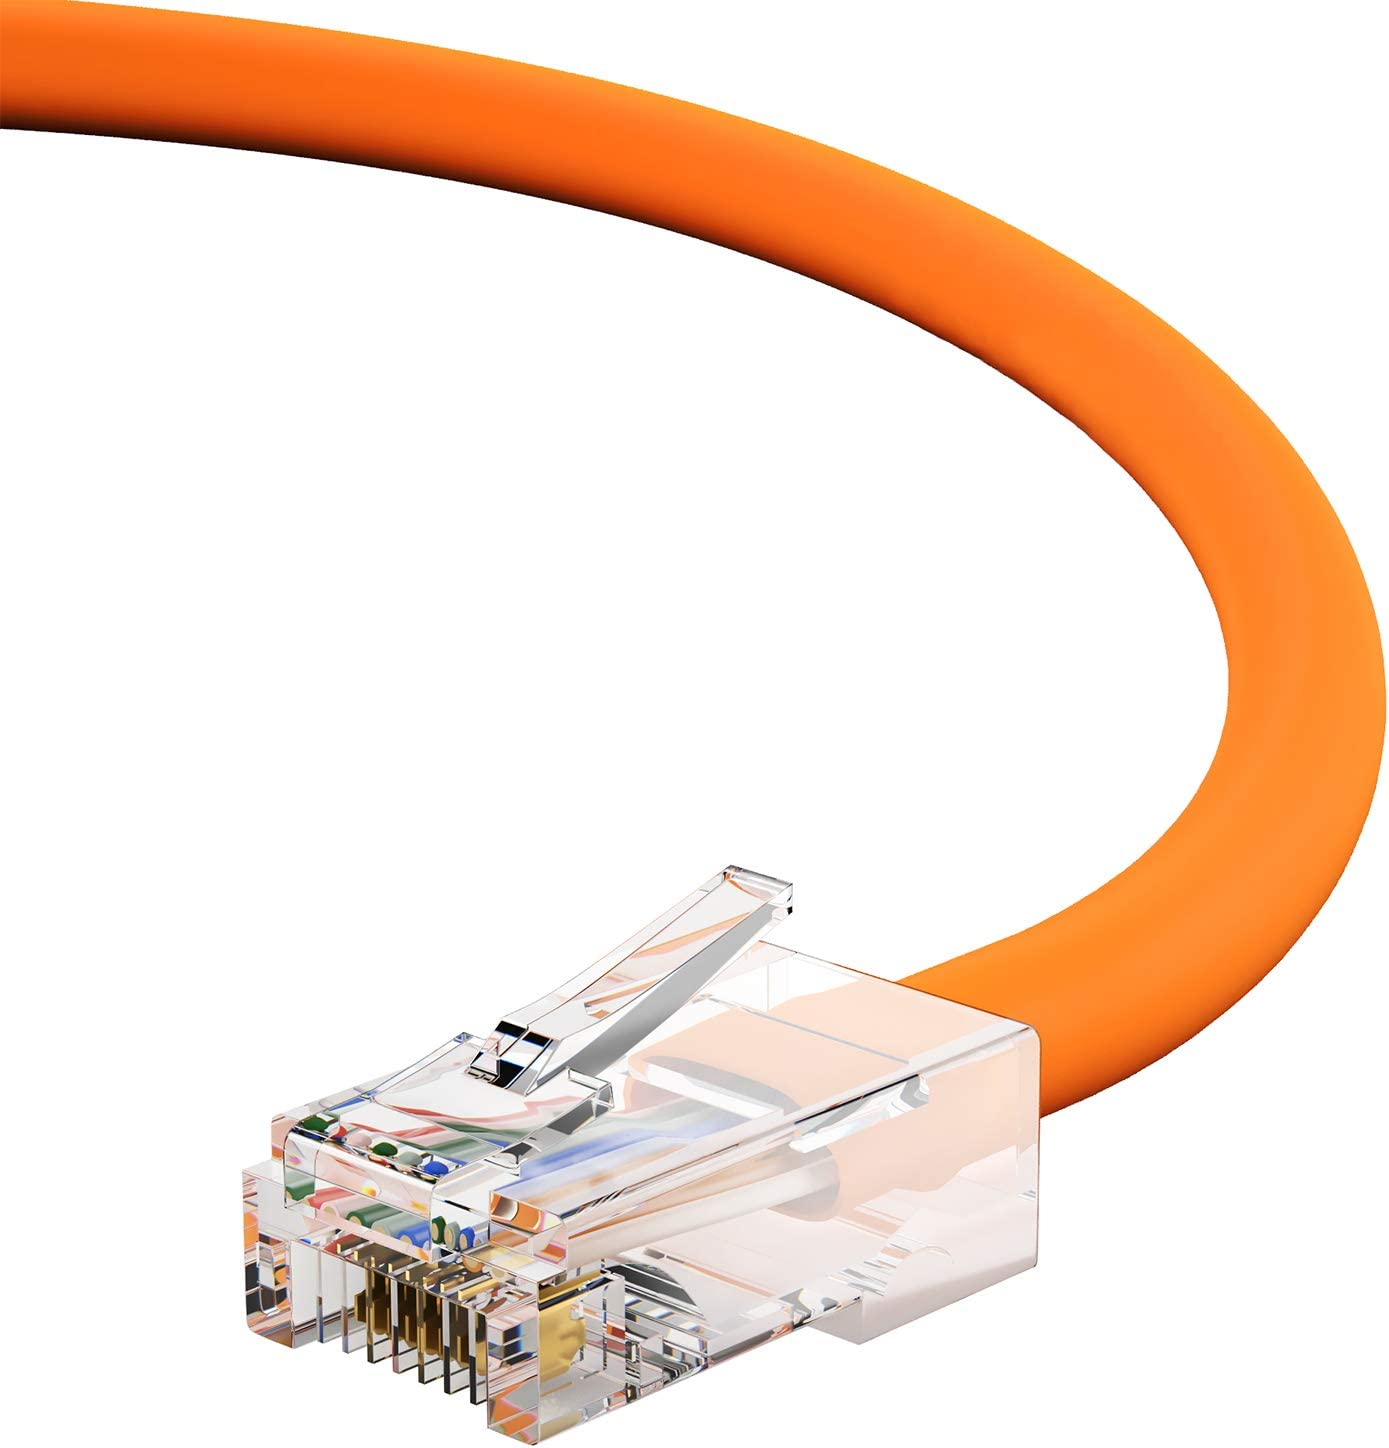 1Gigabit//Sec High Speed LAN Internet//Patch Cable 6 Feet - Orange GOWOS Cat5e Ethernet Cable 350MHz 24AWG Network Cable with Gold Plated RJ45 Non-Booted Connector